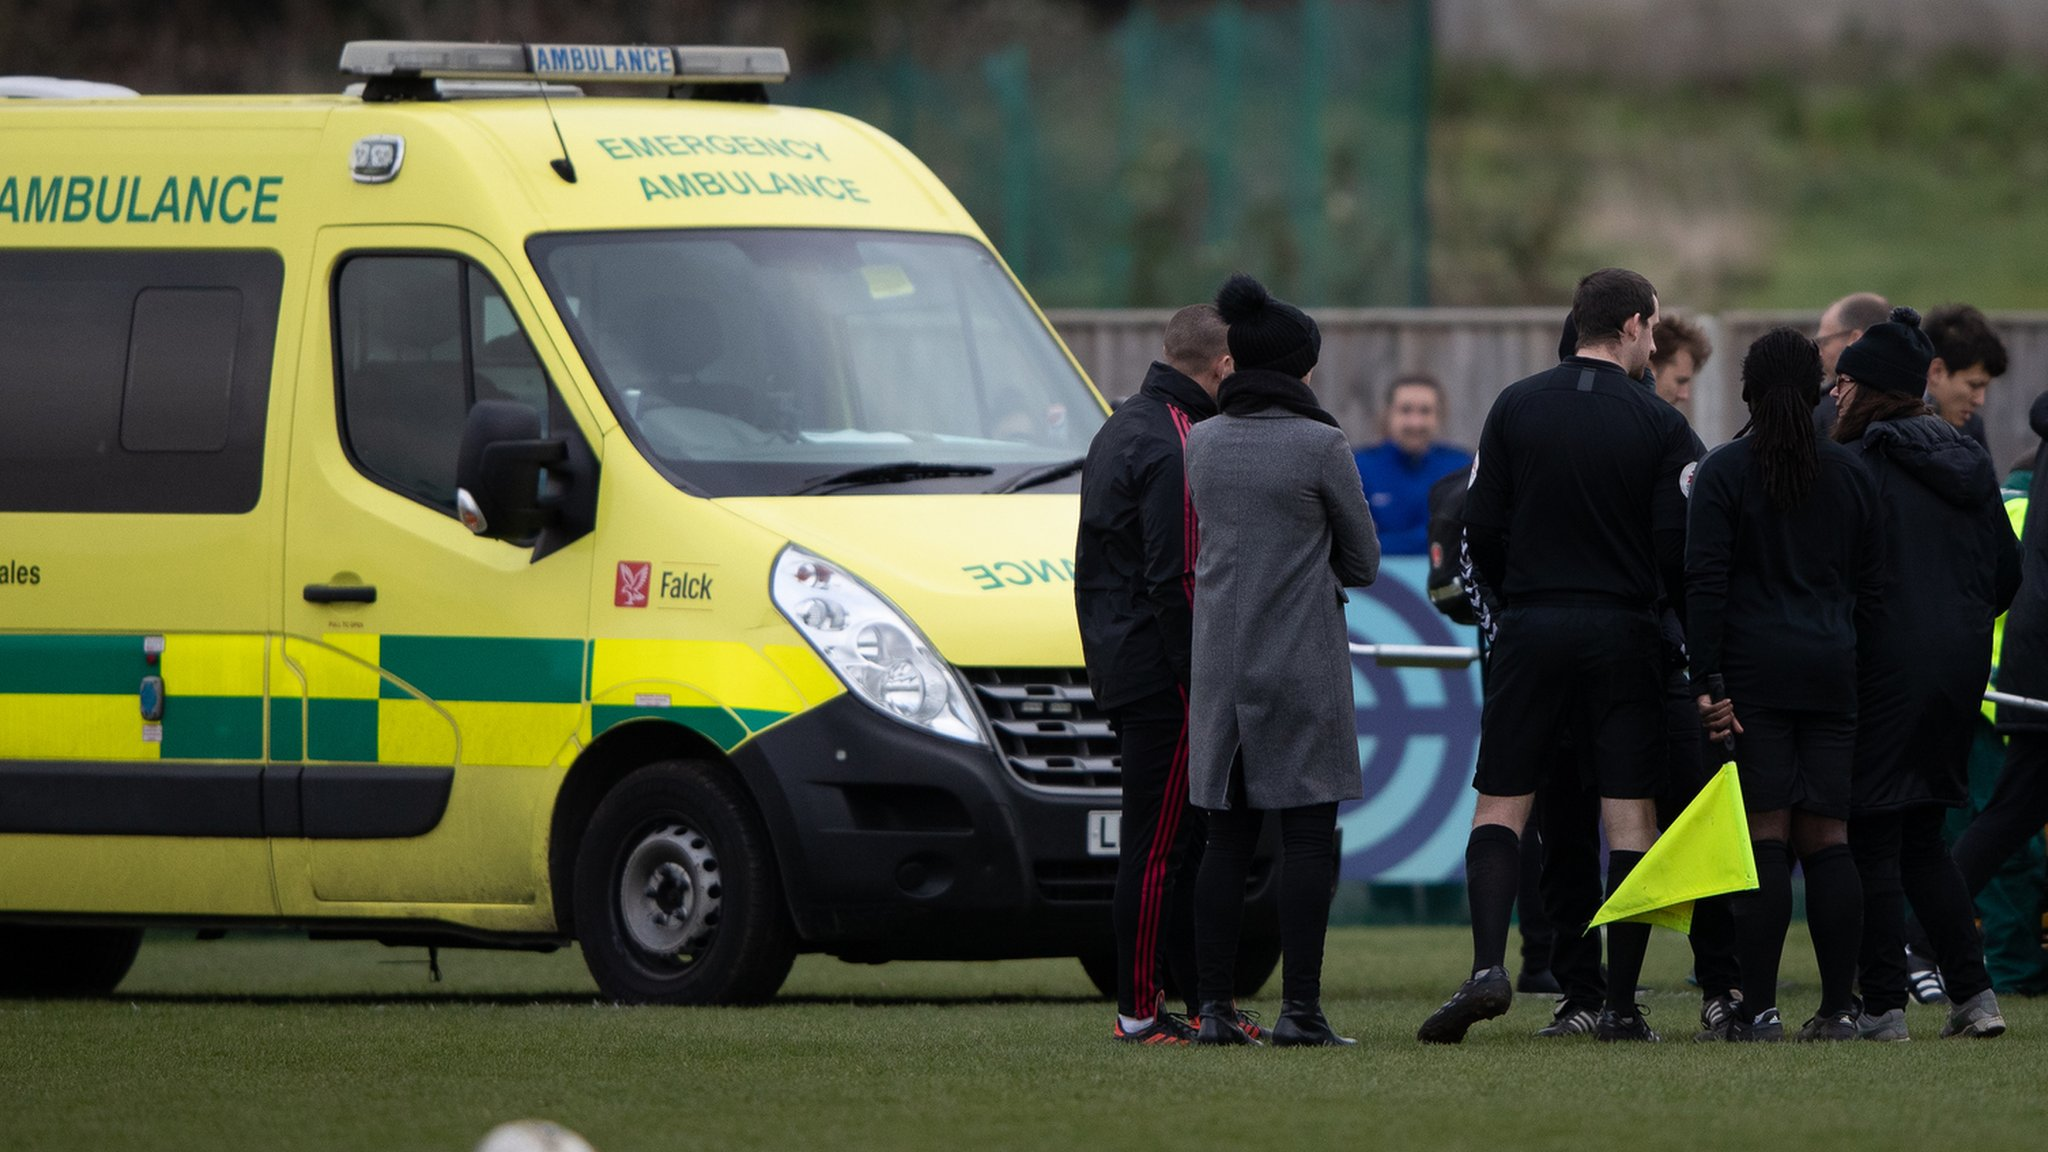 Charlotte Kerr: Charlton v Man Utd Women abandoned over lack of oxygen for injuries